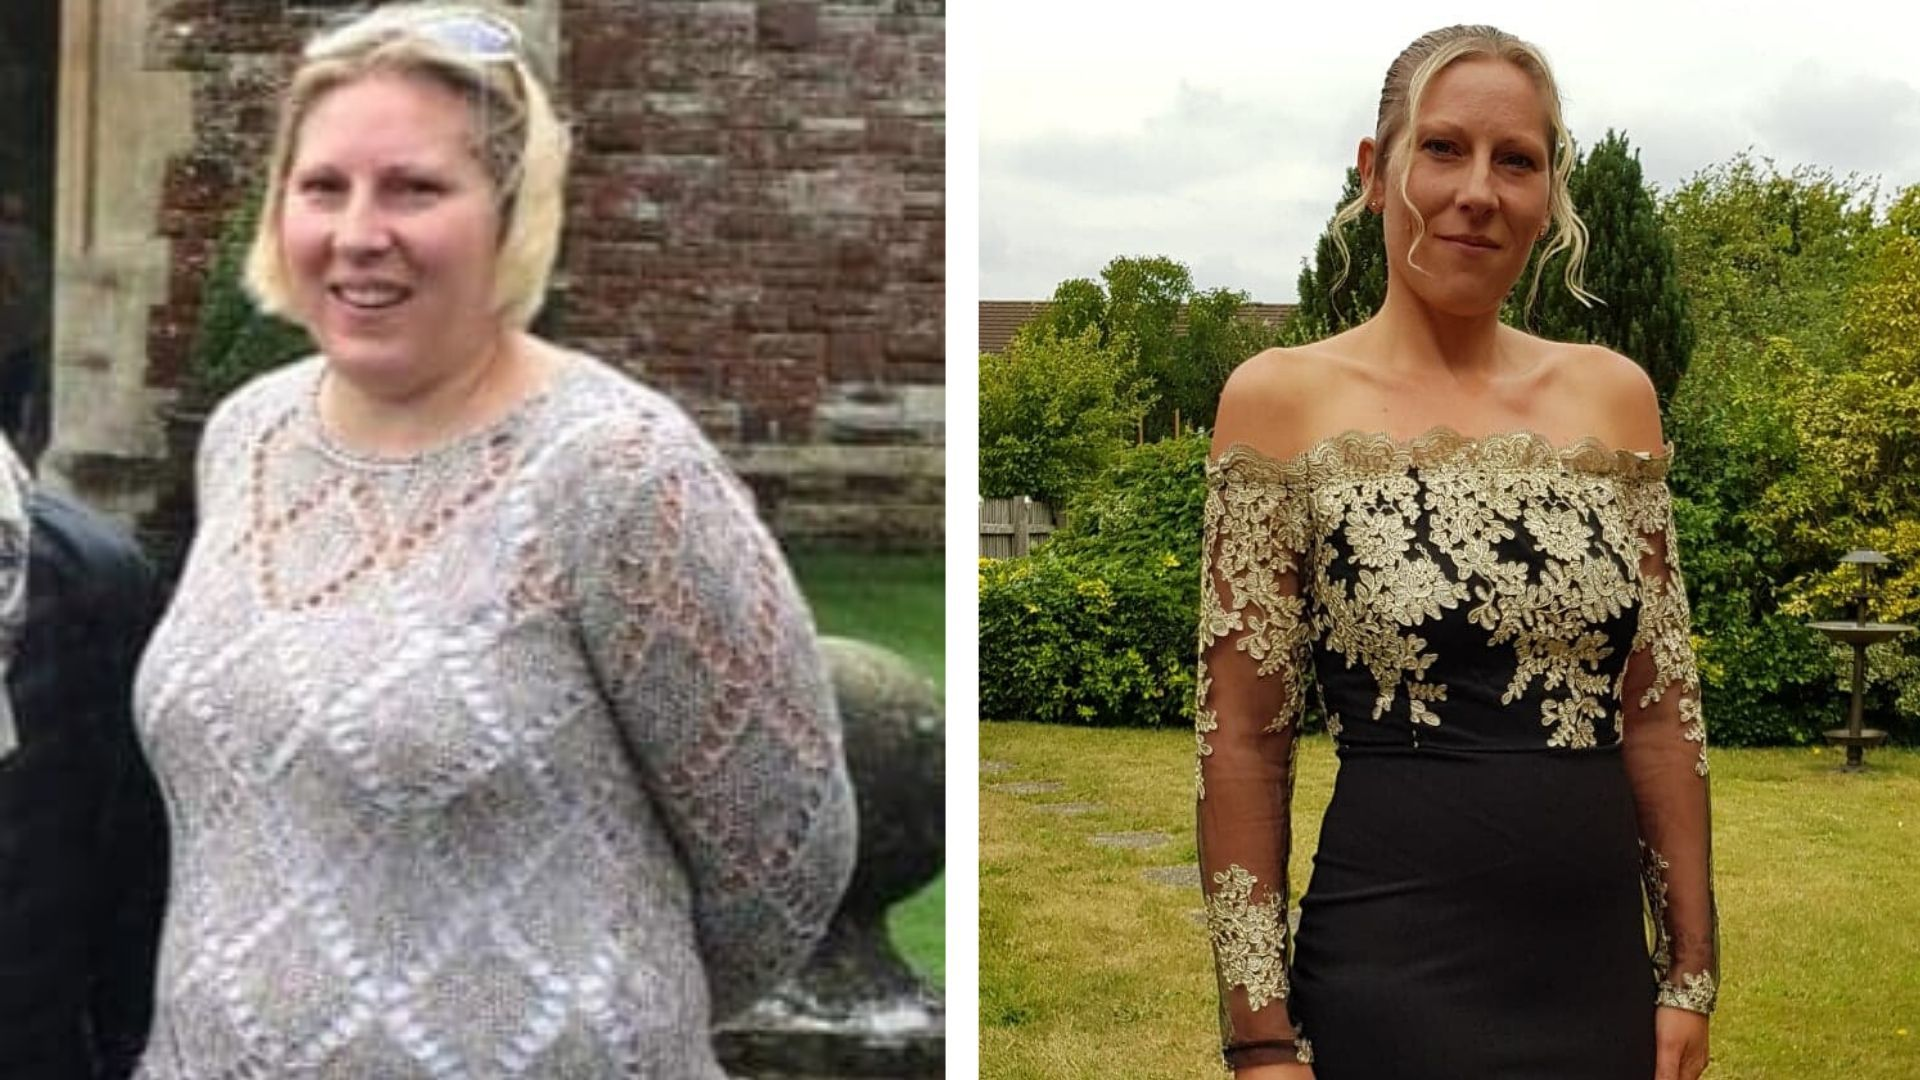 Mum-of-two loses six stone and drops five dress sizes after overcoming life-threatening sepsis scare